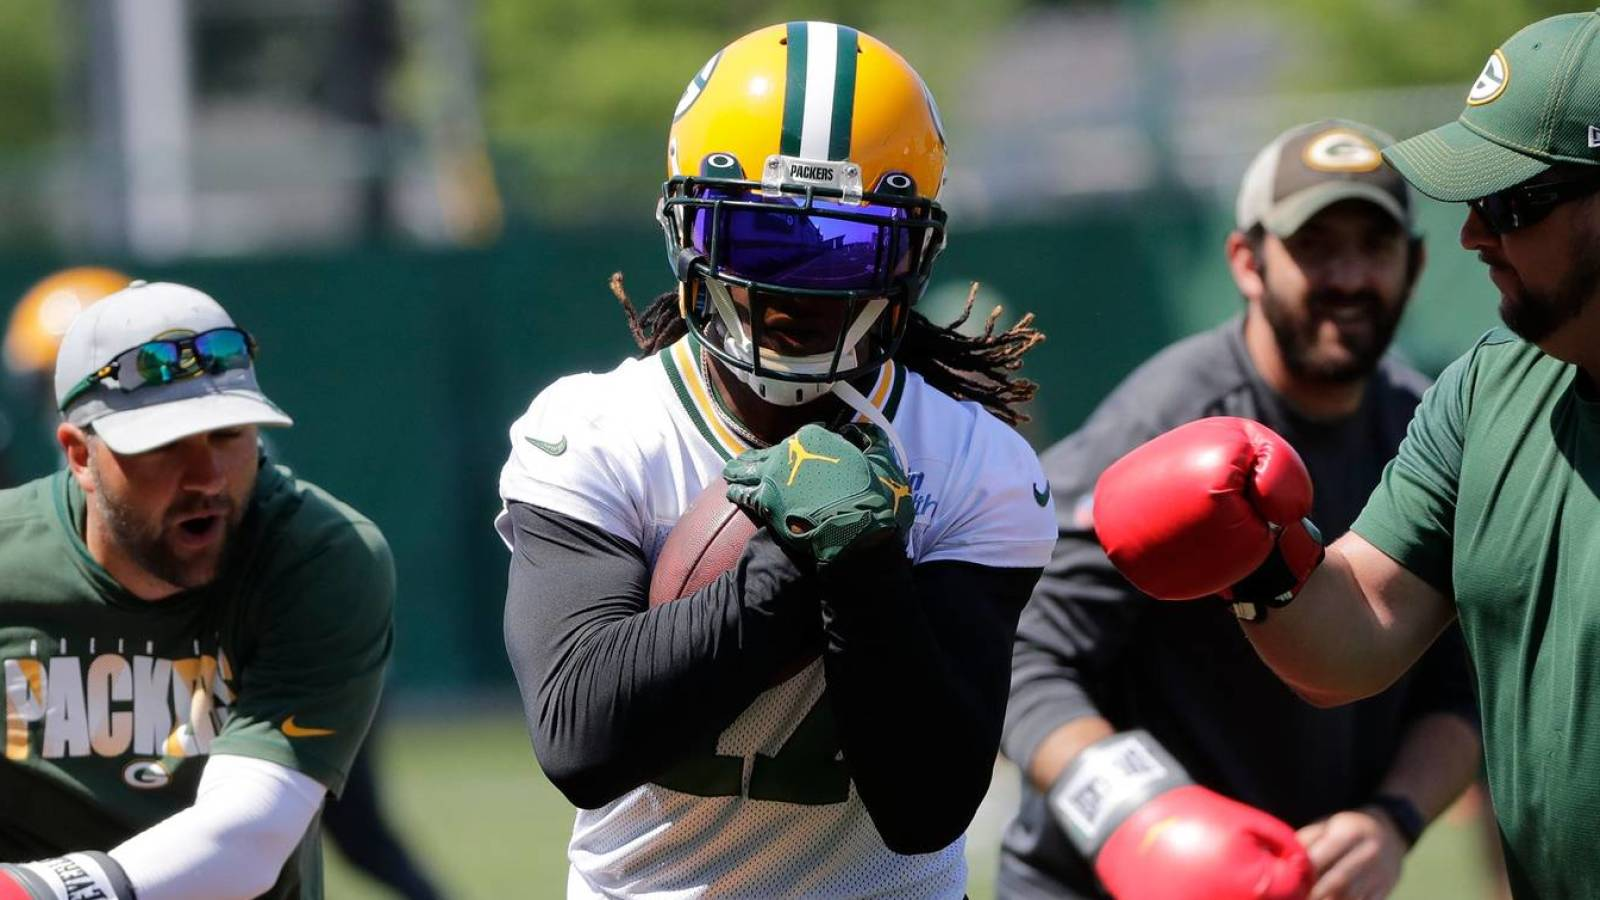 Davante Adams hints again that he could leave the Packers after the season